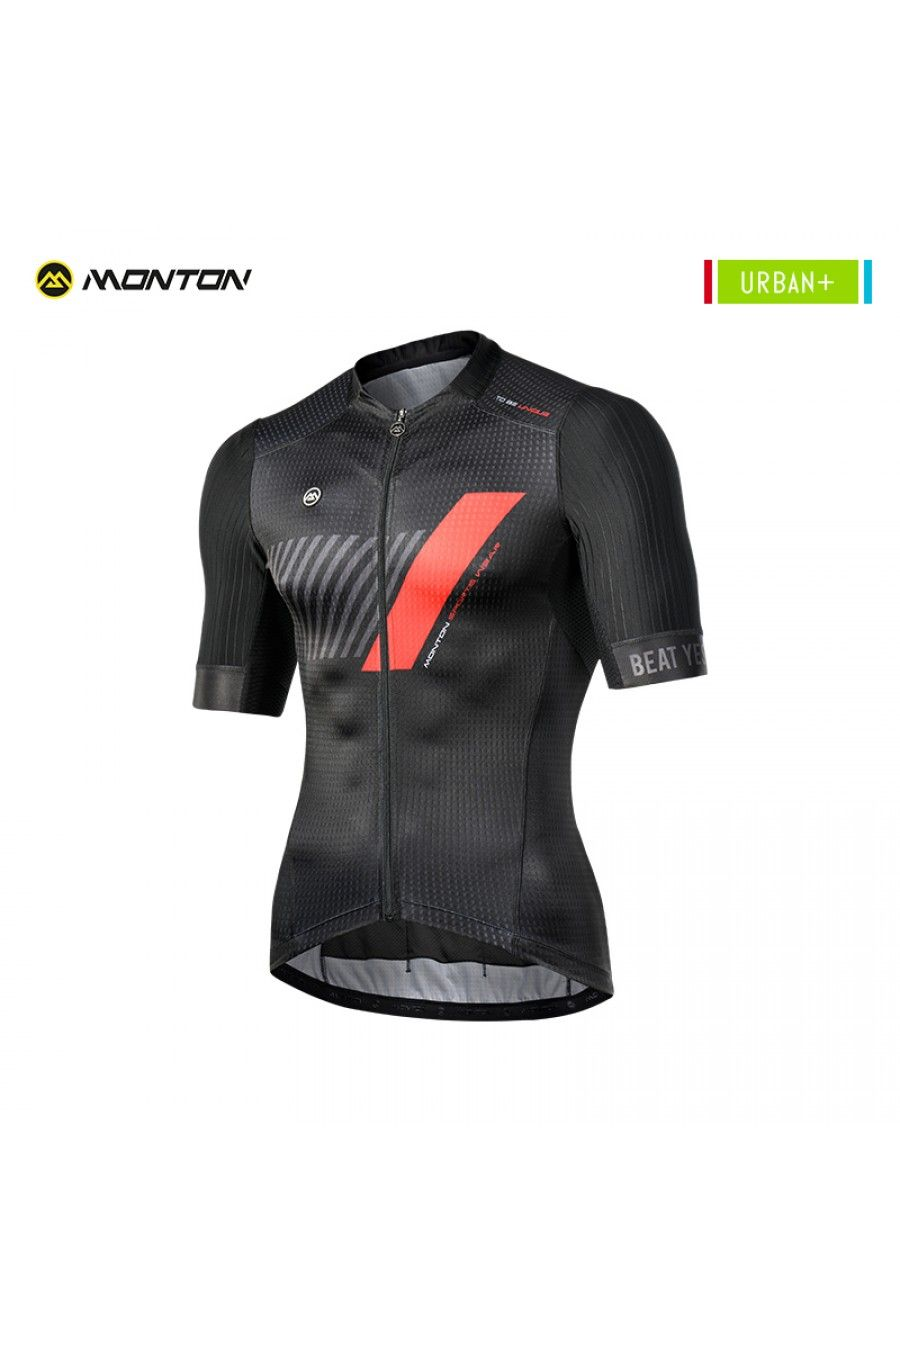 Bike Jersey Cycling Wear Bike Hardtail Mountain Bike